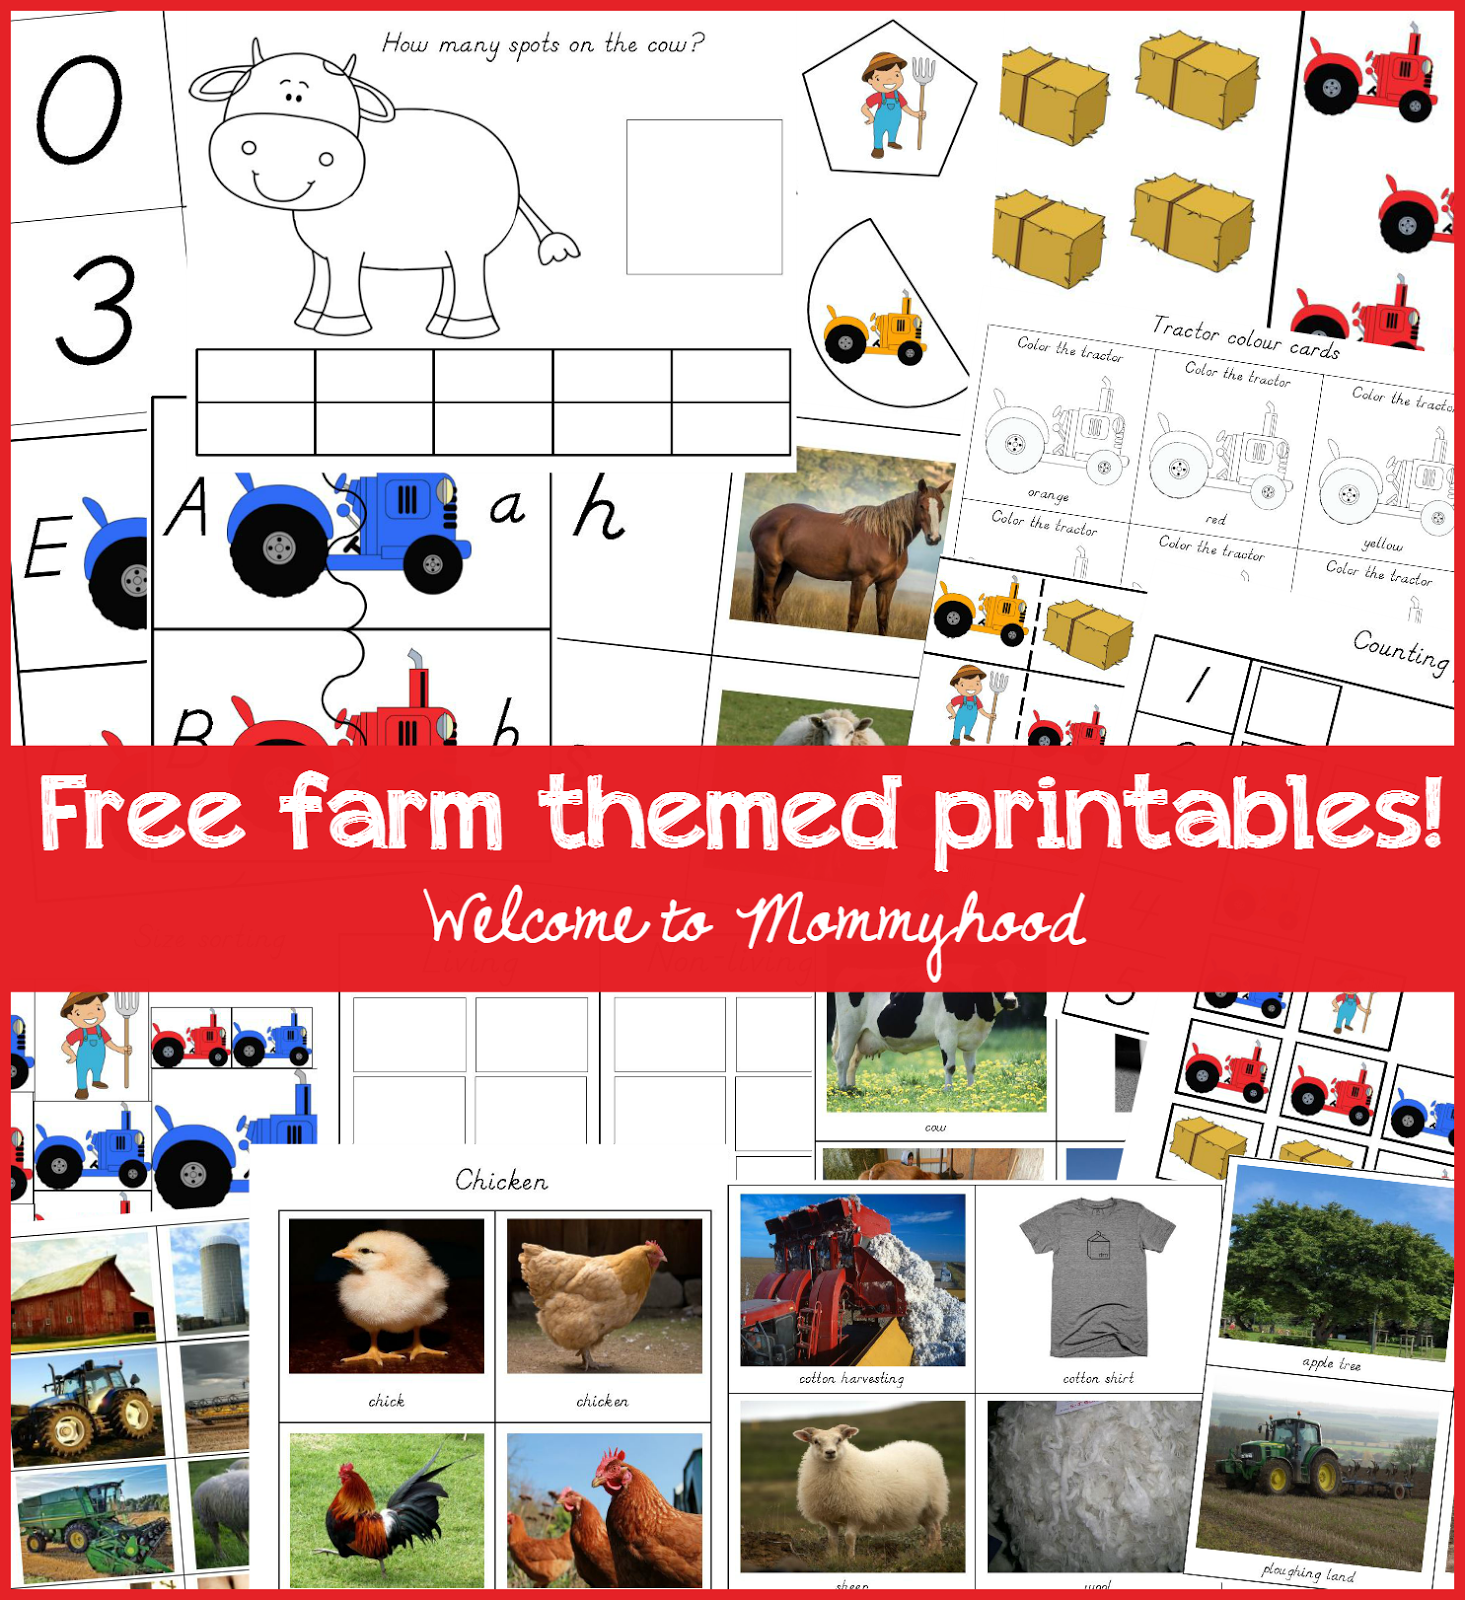 Free Farm Themed Printables For Preschoolers And Toddlers